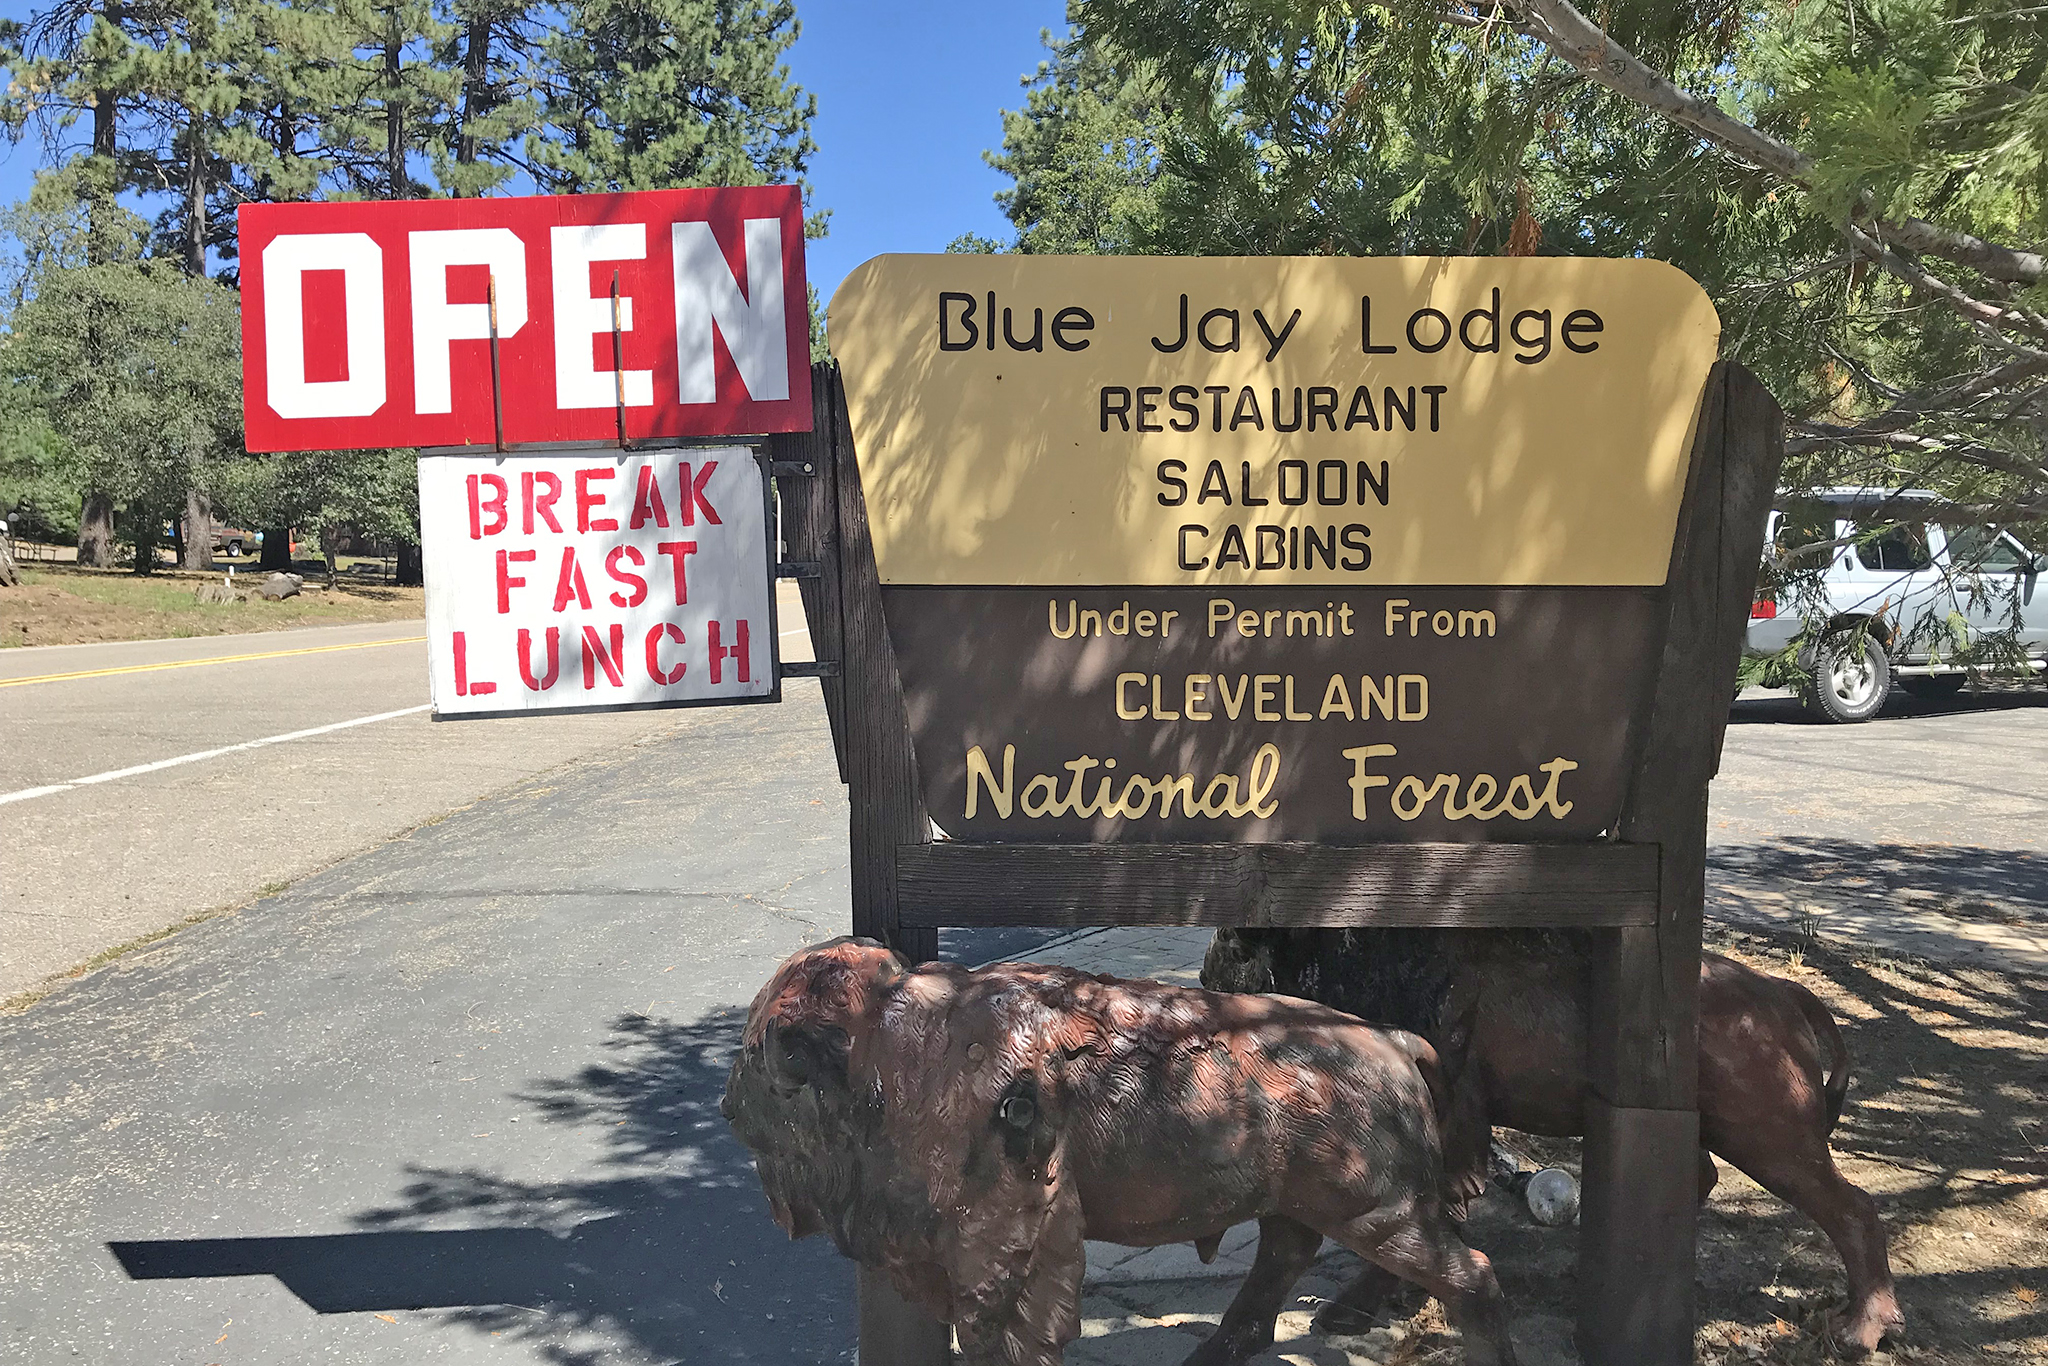 Blue Jay Lodge: right out of Davy Crockett!